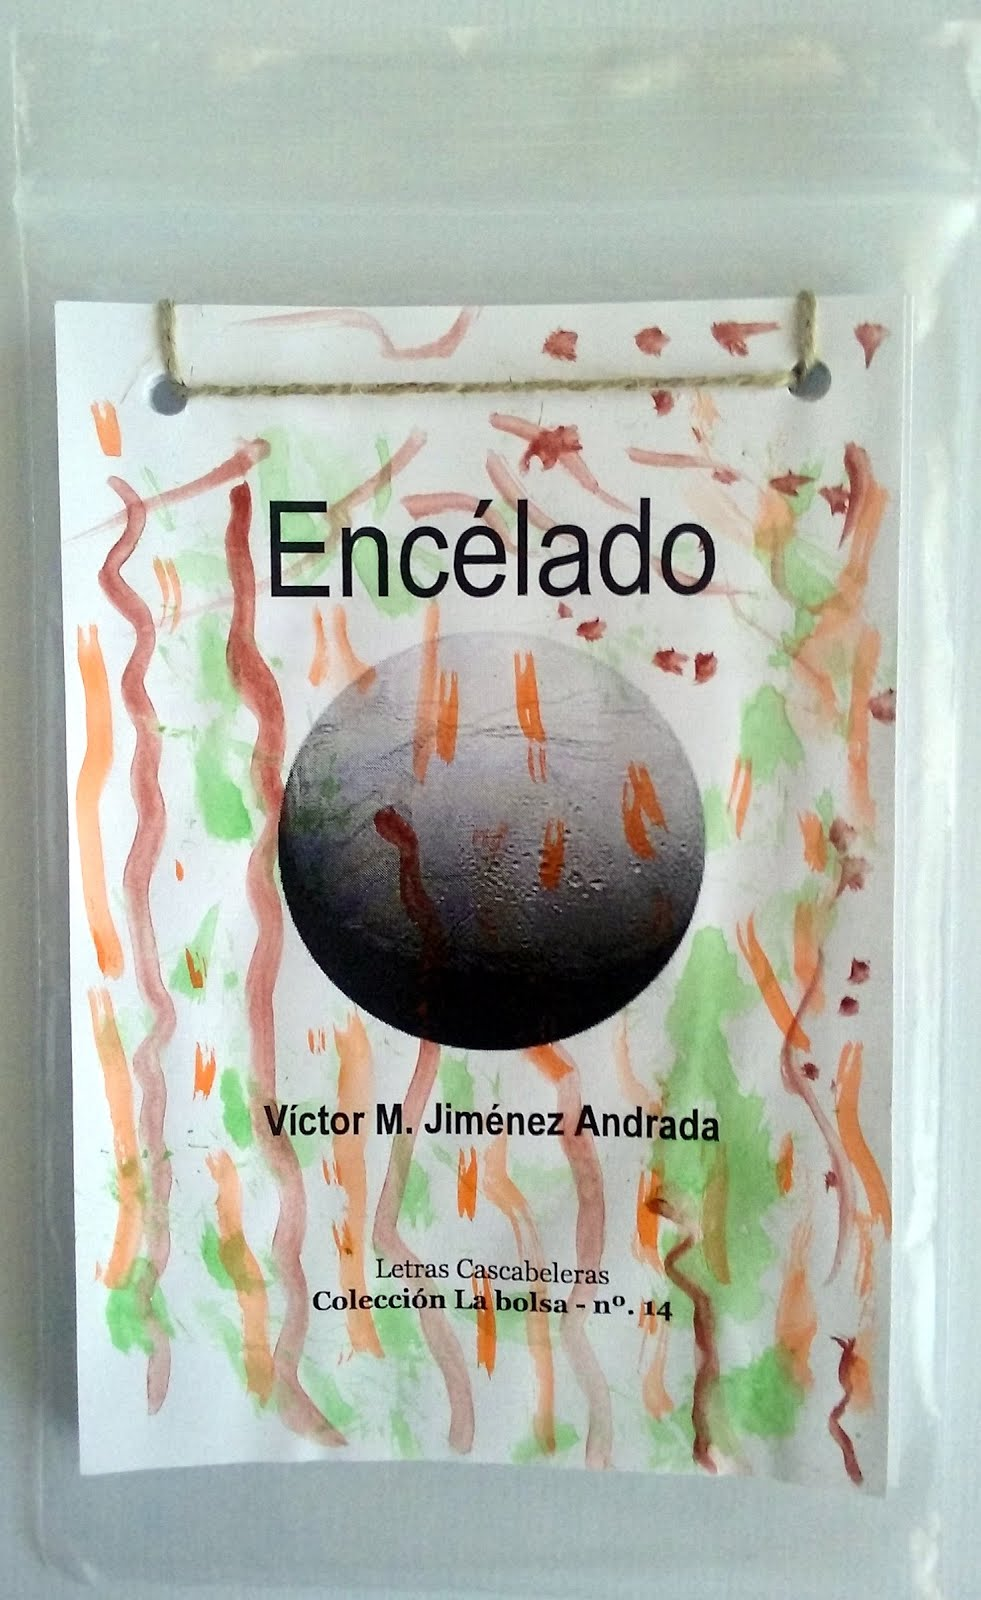 Encélado